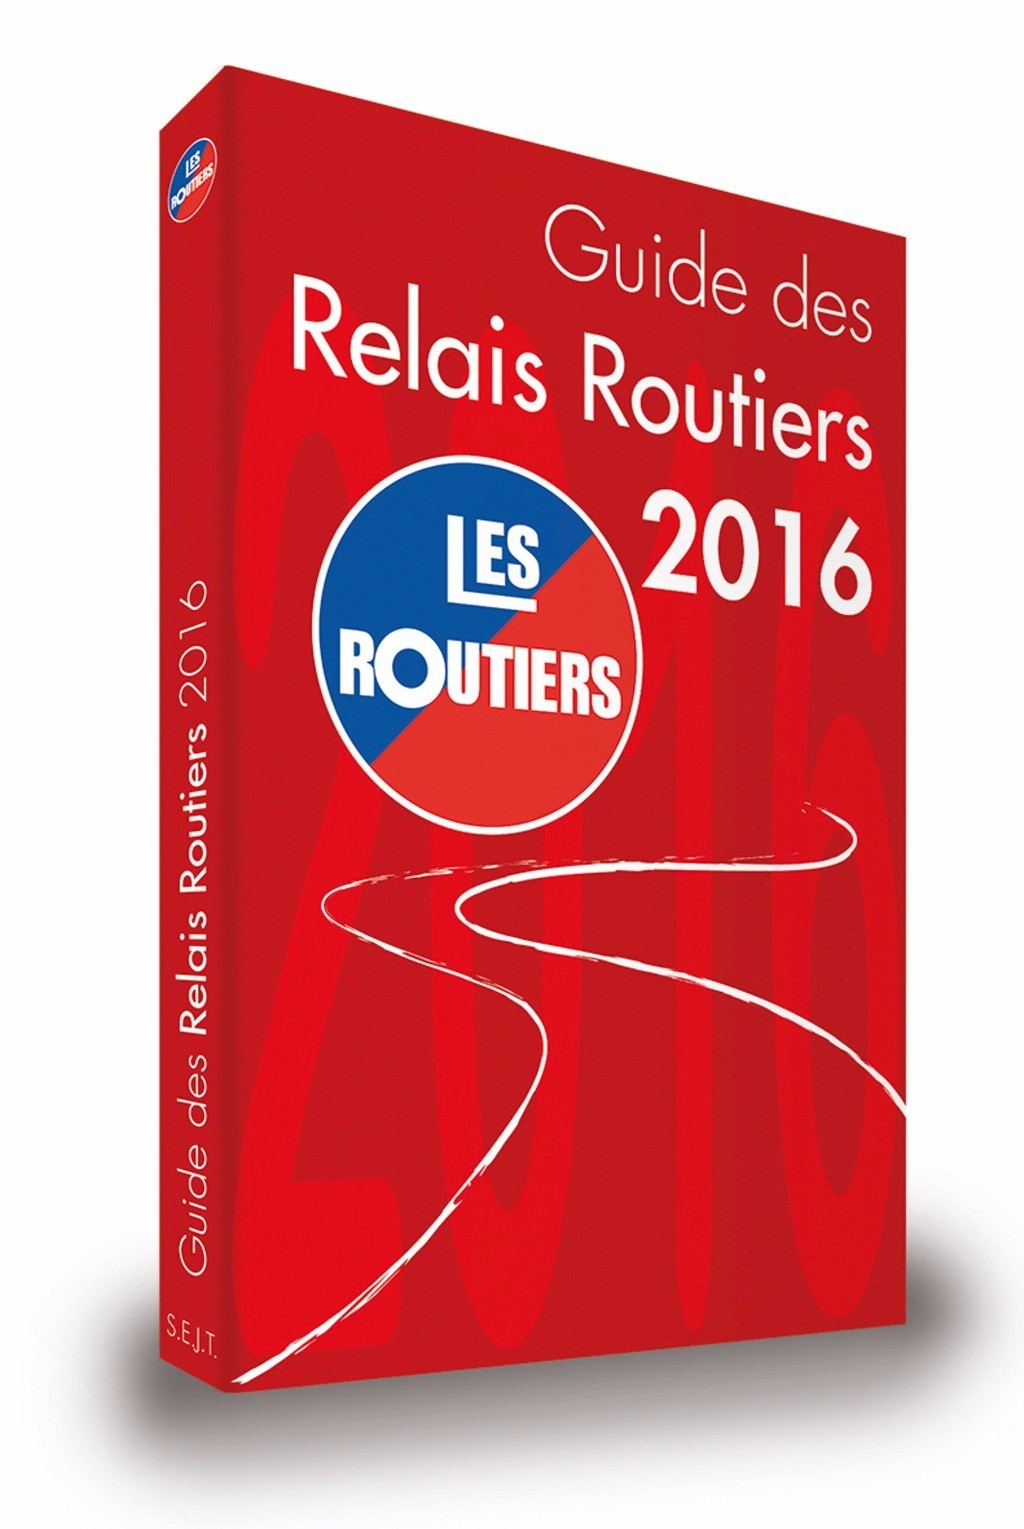 le guide des relais routiers 2016 vient de para tre article la r publique de seine marne. Black Bedroom Furniture Sets. Home Design Ideas